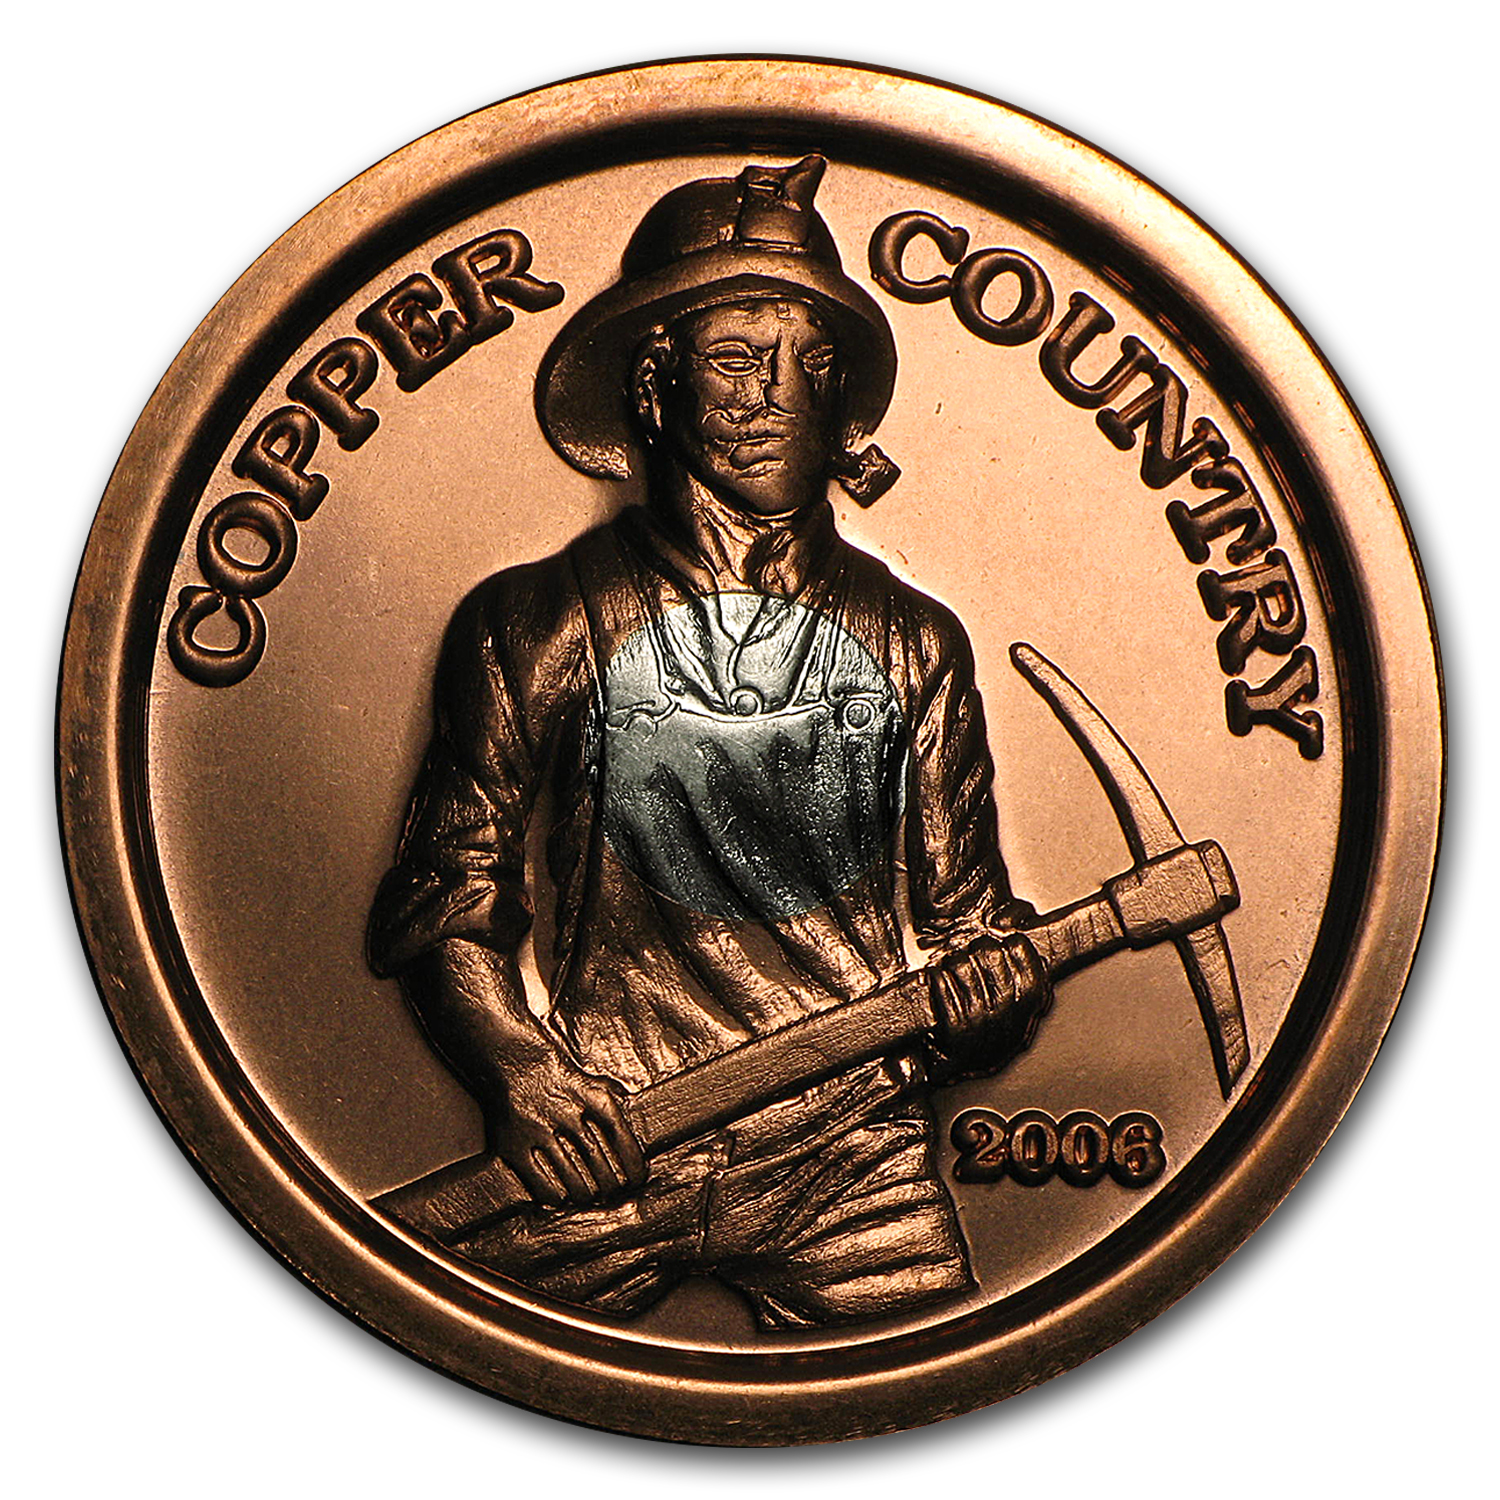 Copper Country - Silver Core Bullion Coin